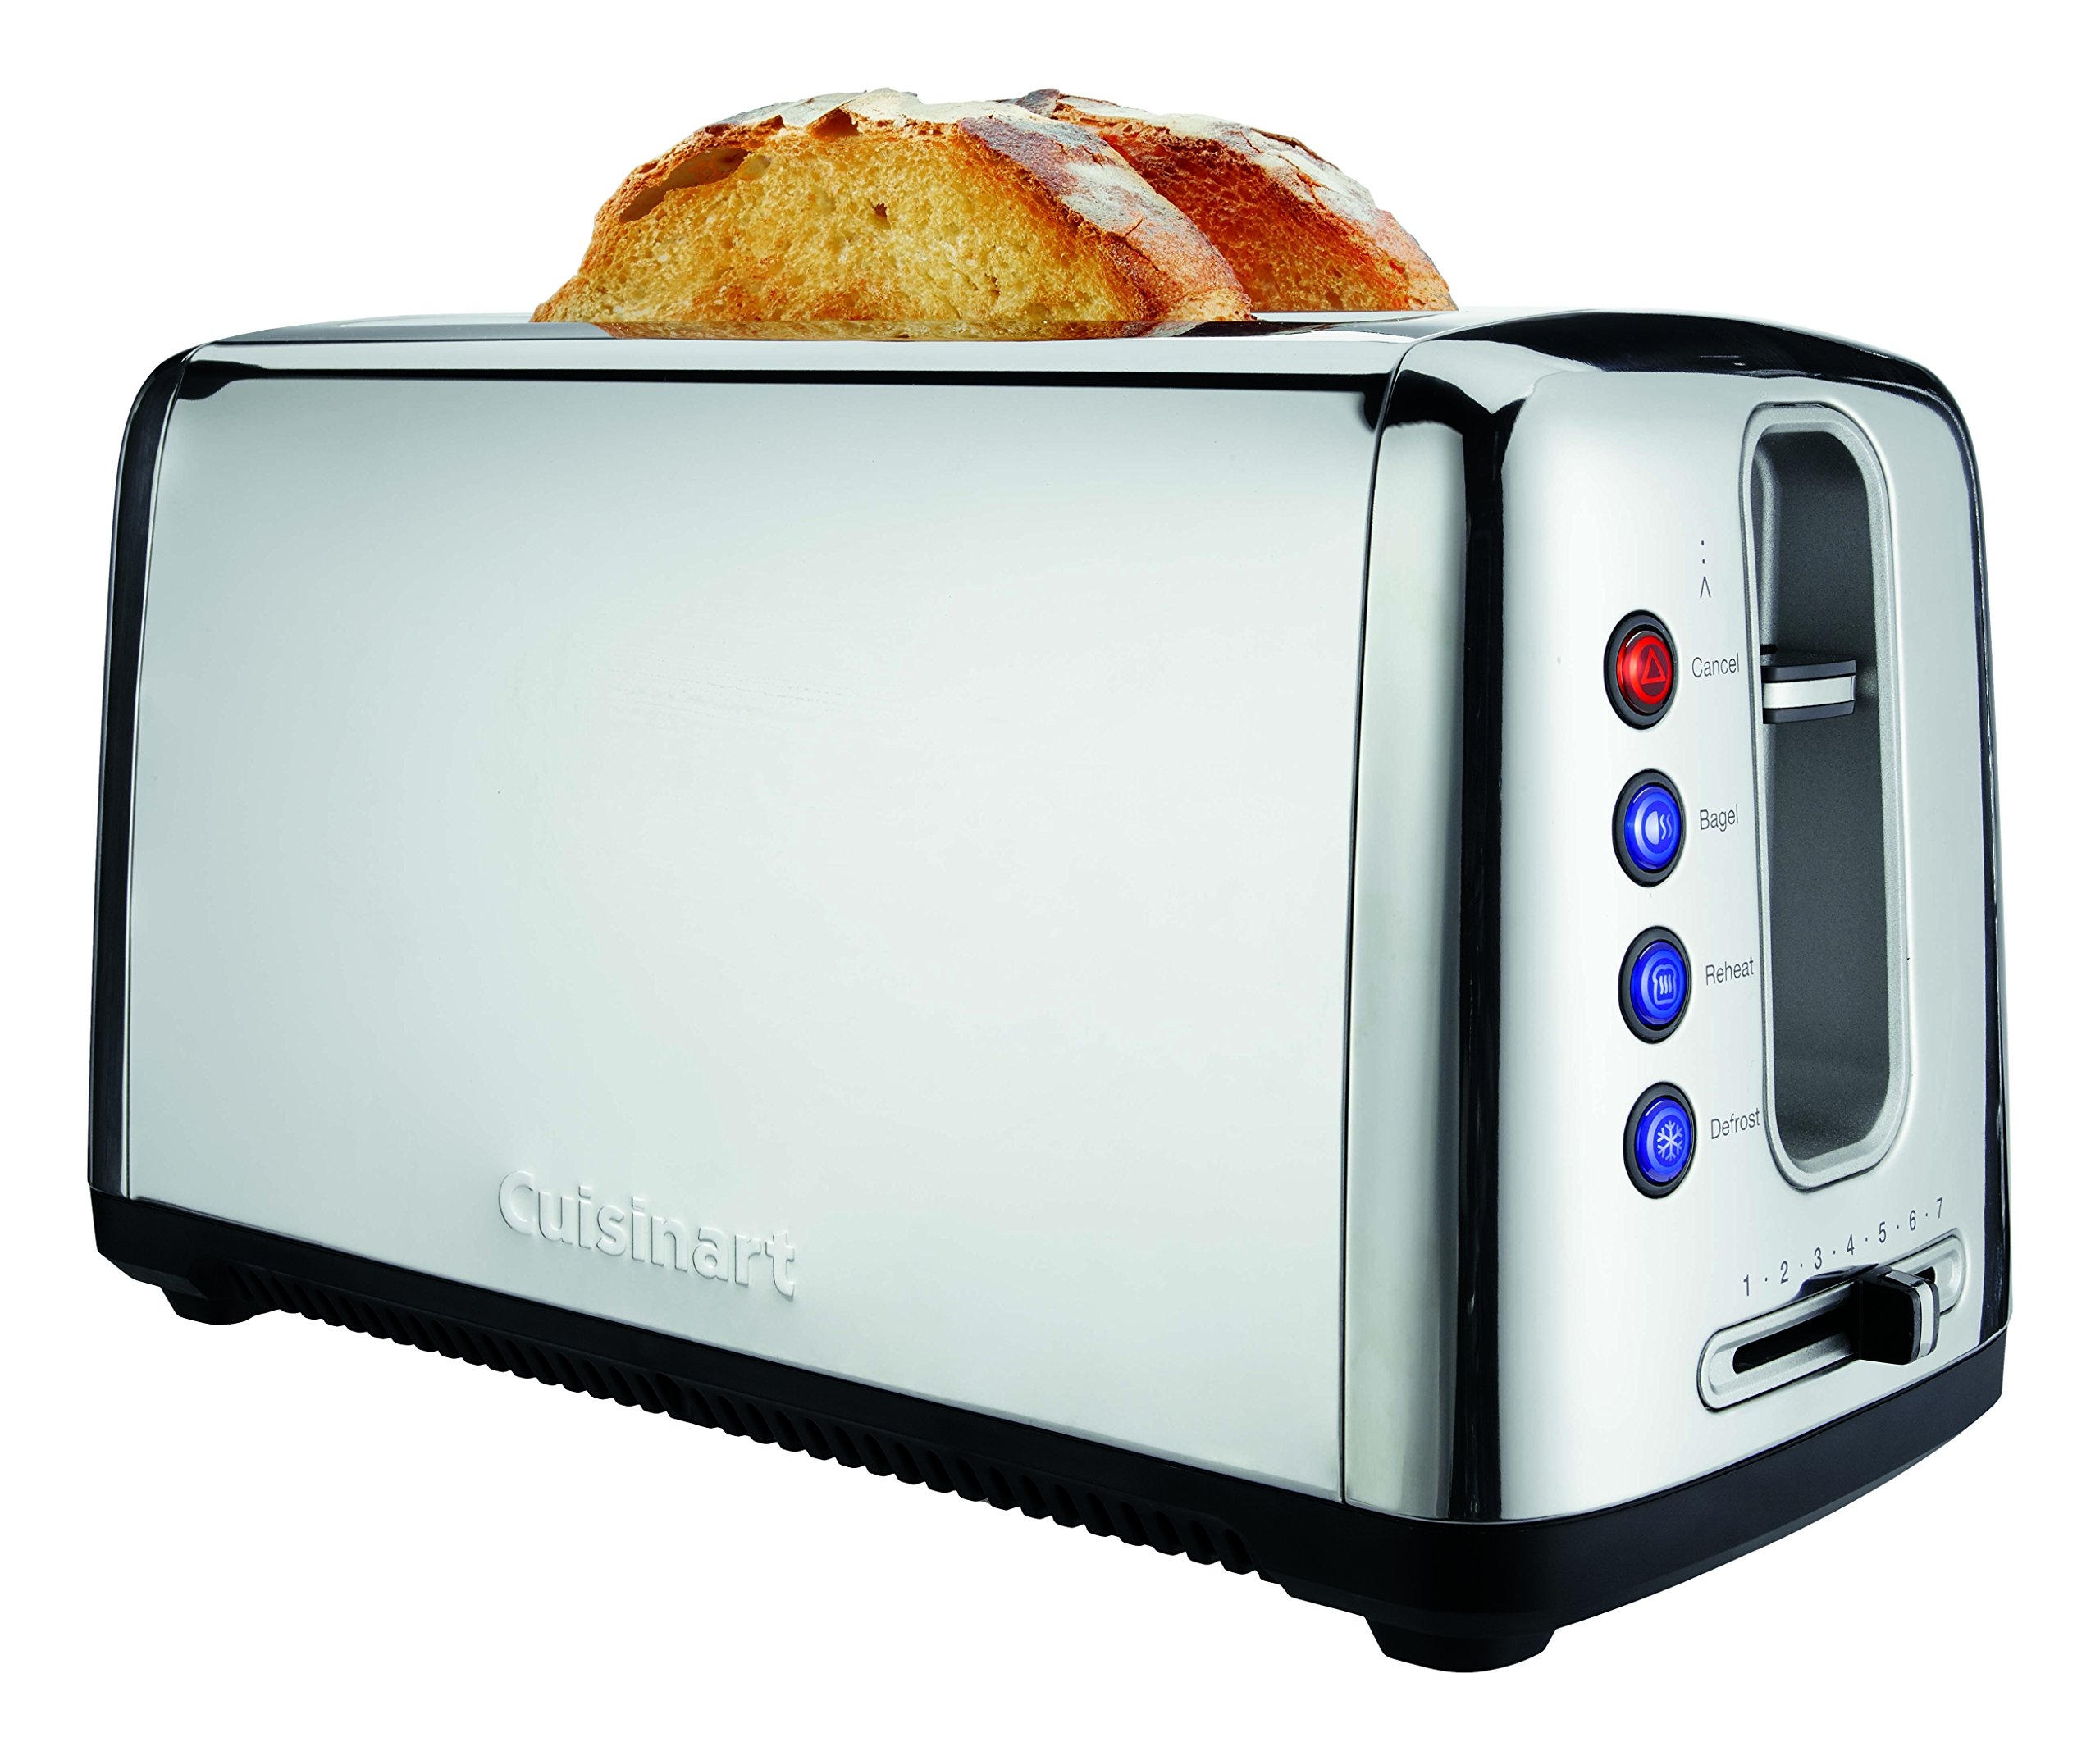 Cuisinart CPT-2400 086279117786 The The Bakery Artisan Bread Toaster, One Size, Chrome by Cuisinart